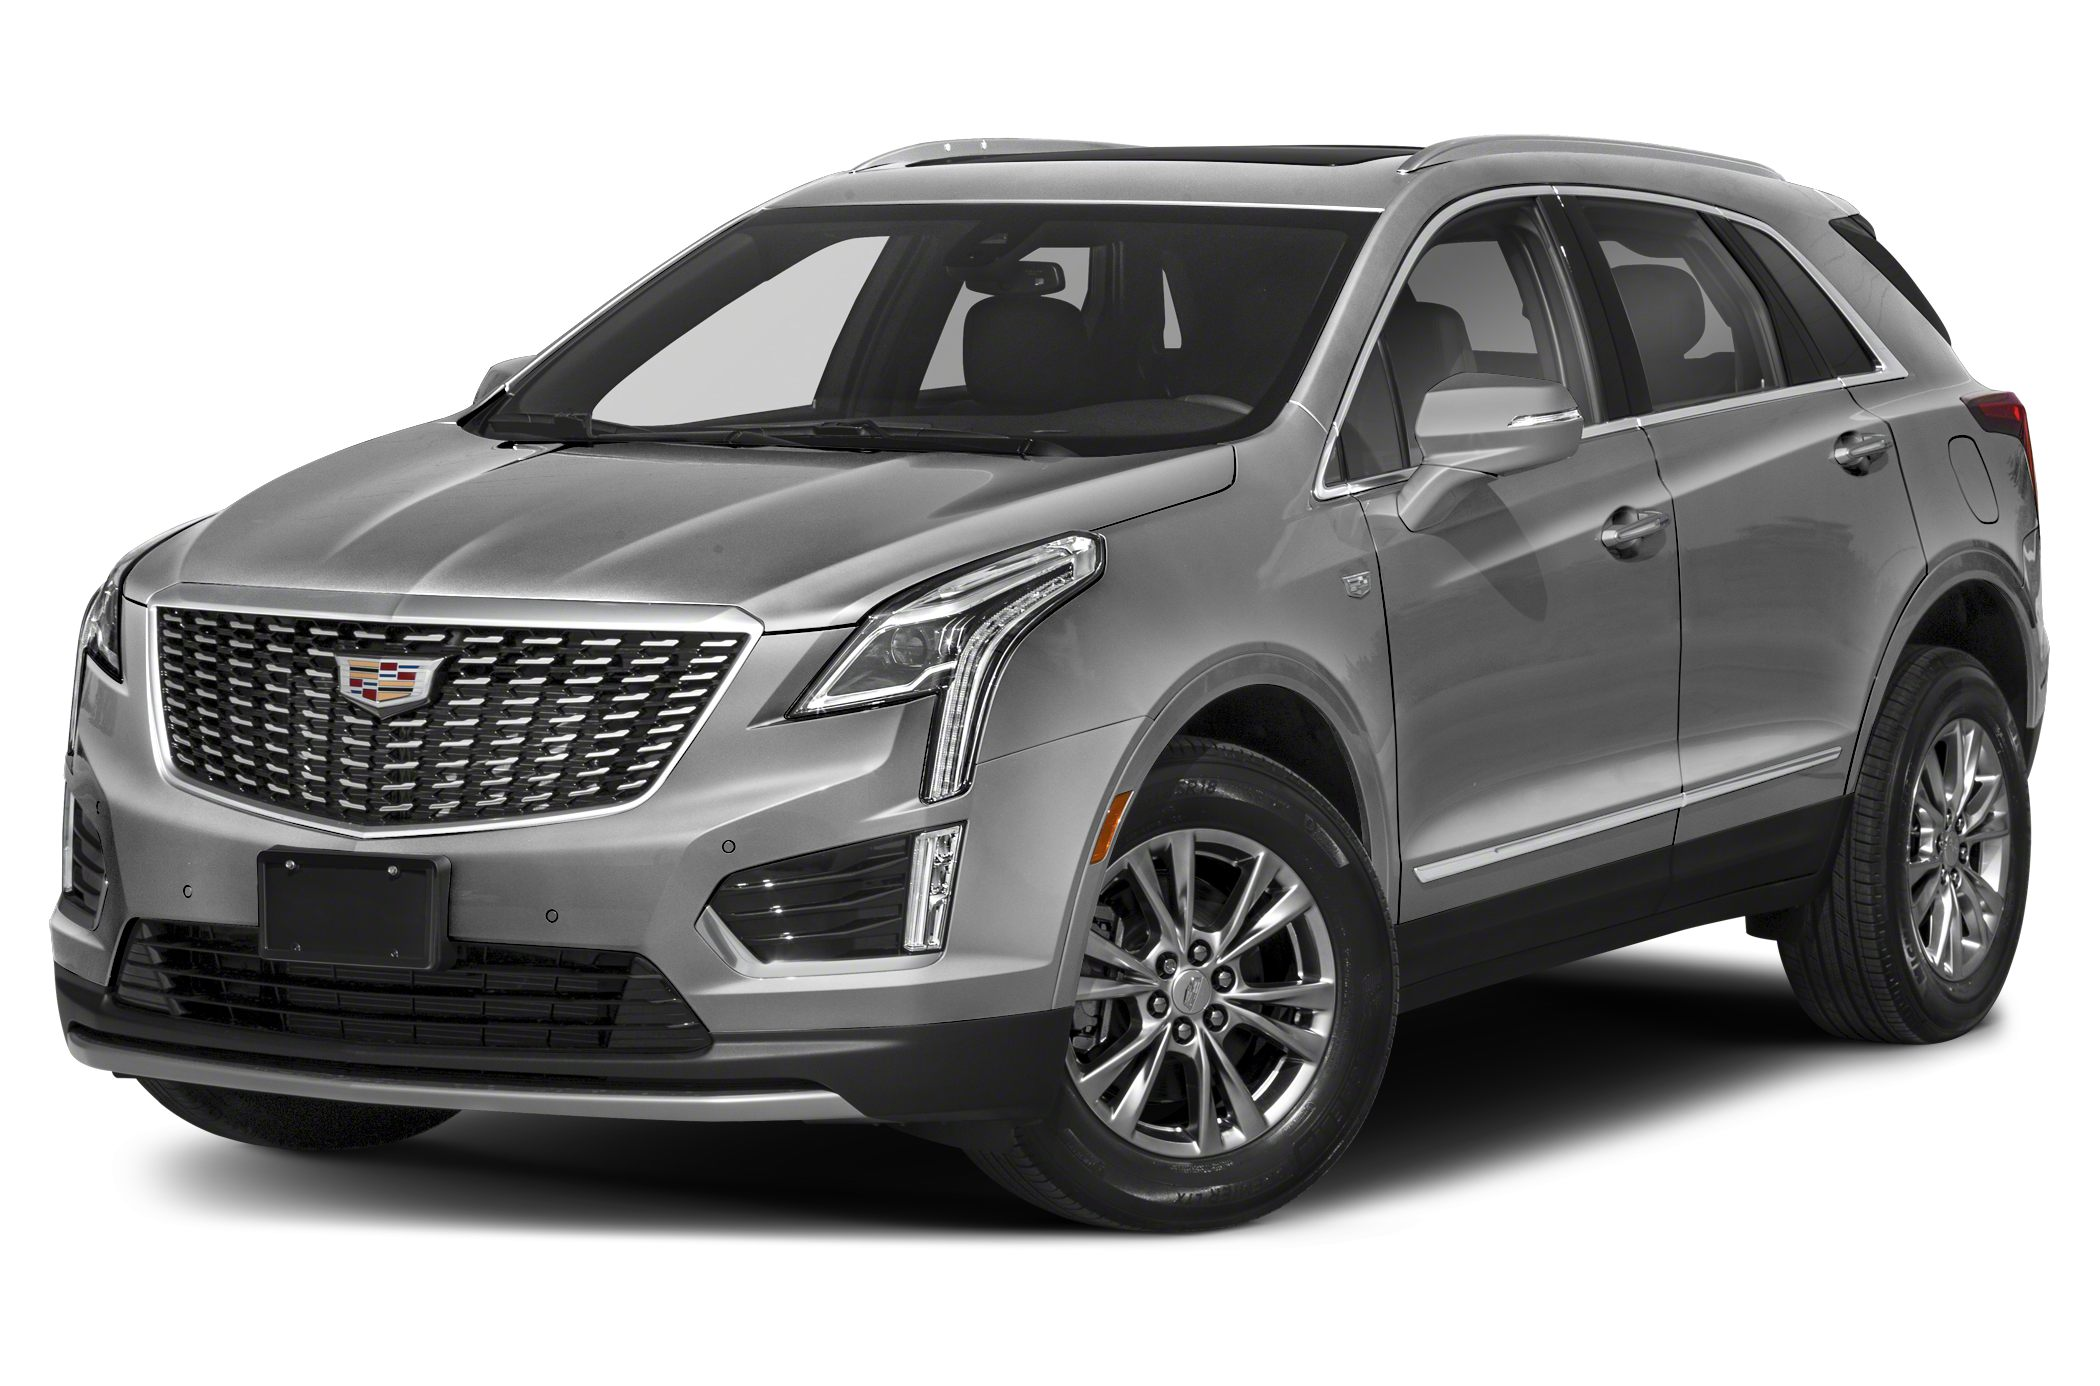 2020 Cadillac Xt5 Review Interior Price Specs >> 2020 Cadillac Xt5 Luxury 4dr All Wheel Drive Pricing And Options